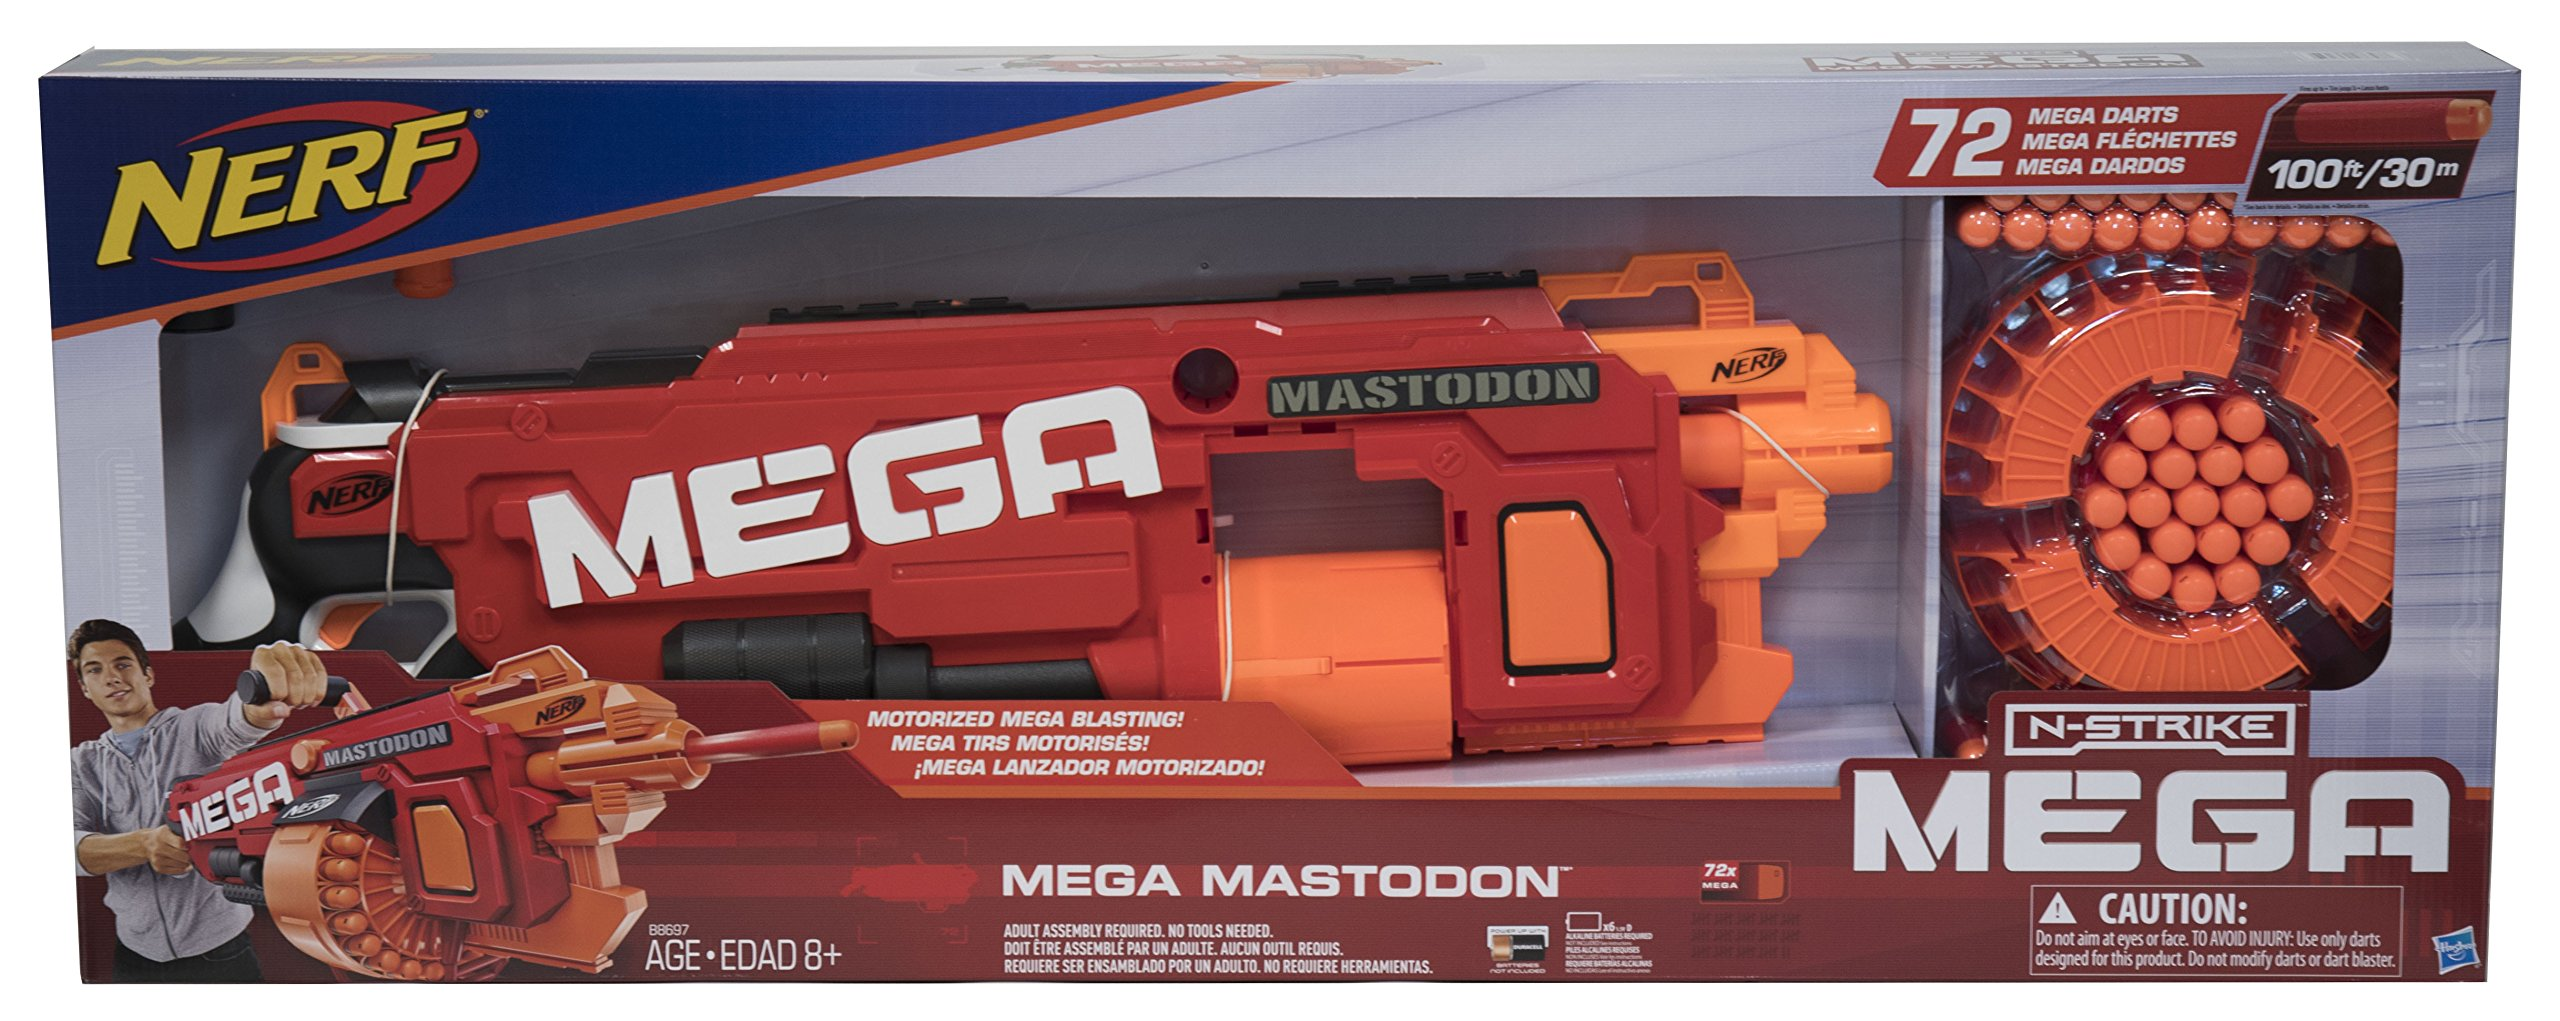 nerf mega mastodon instructions